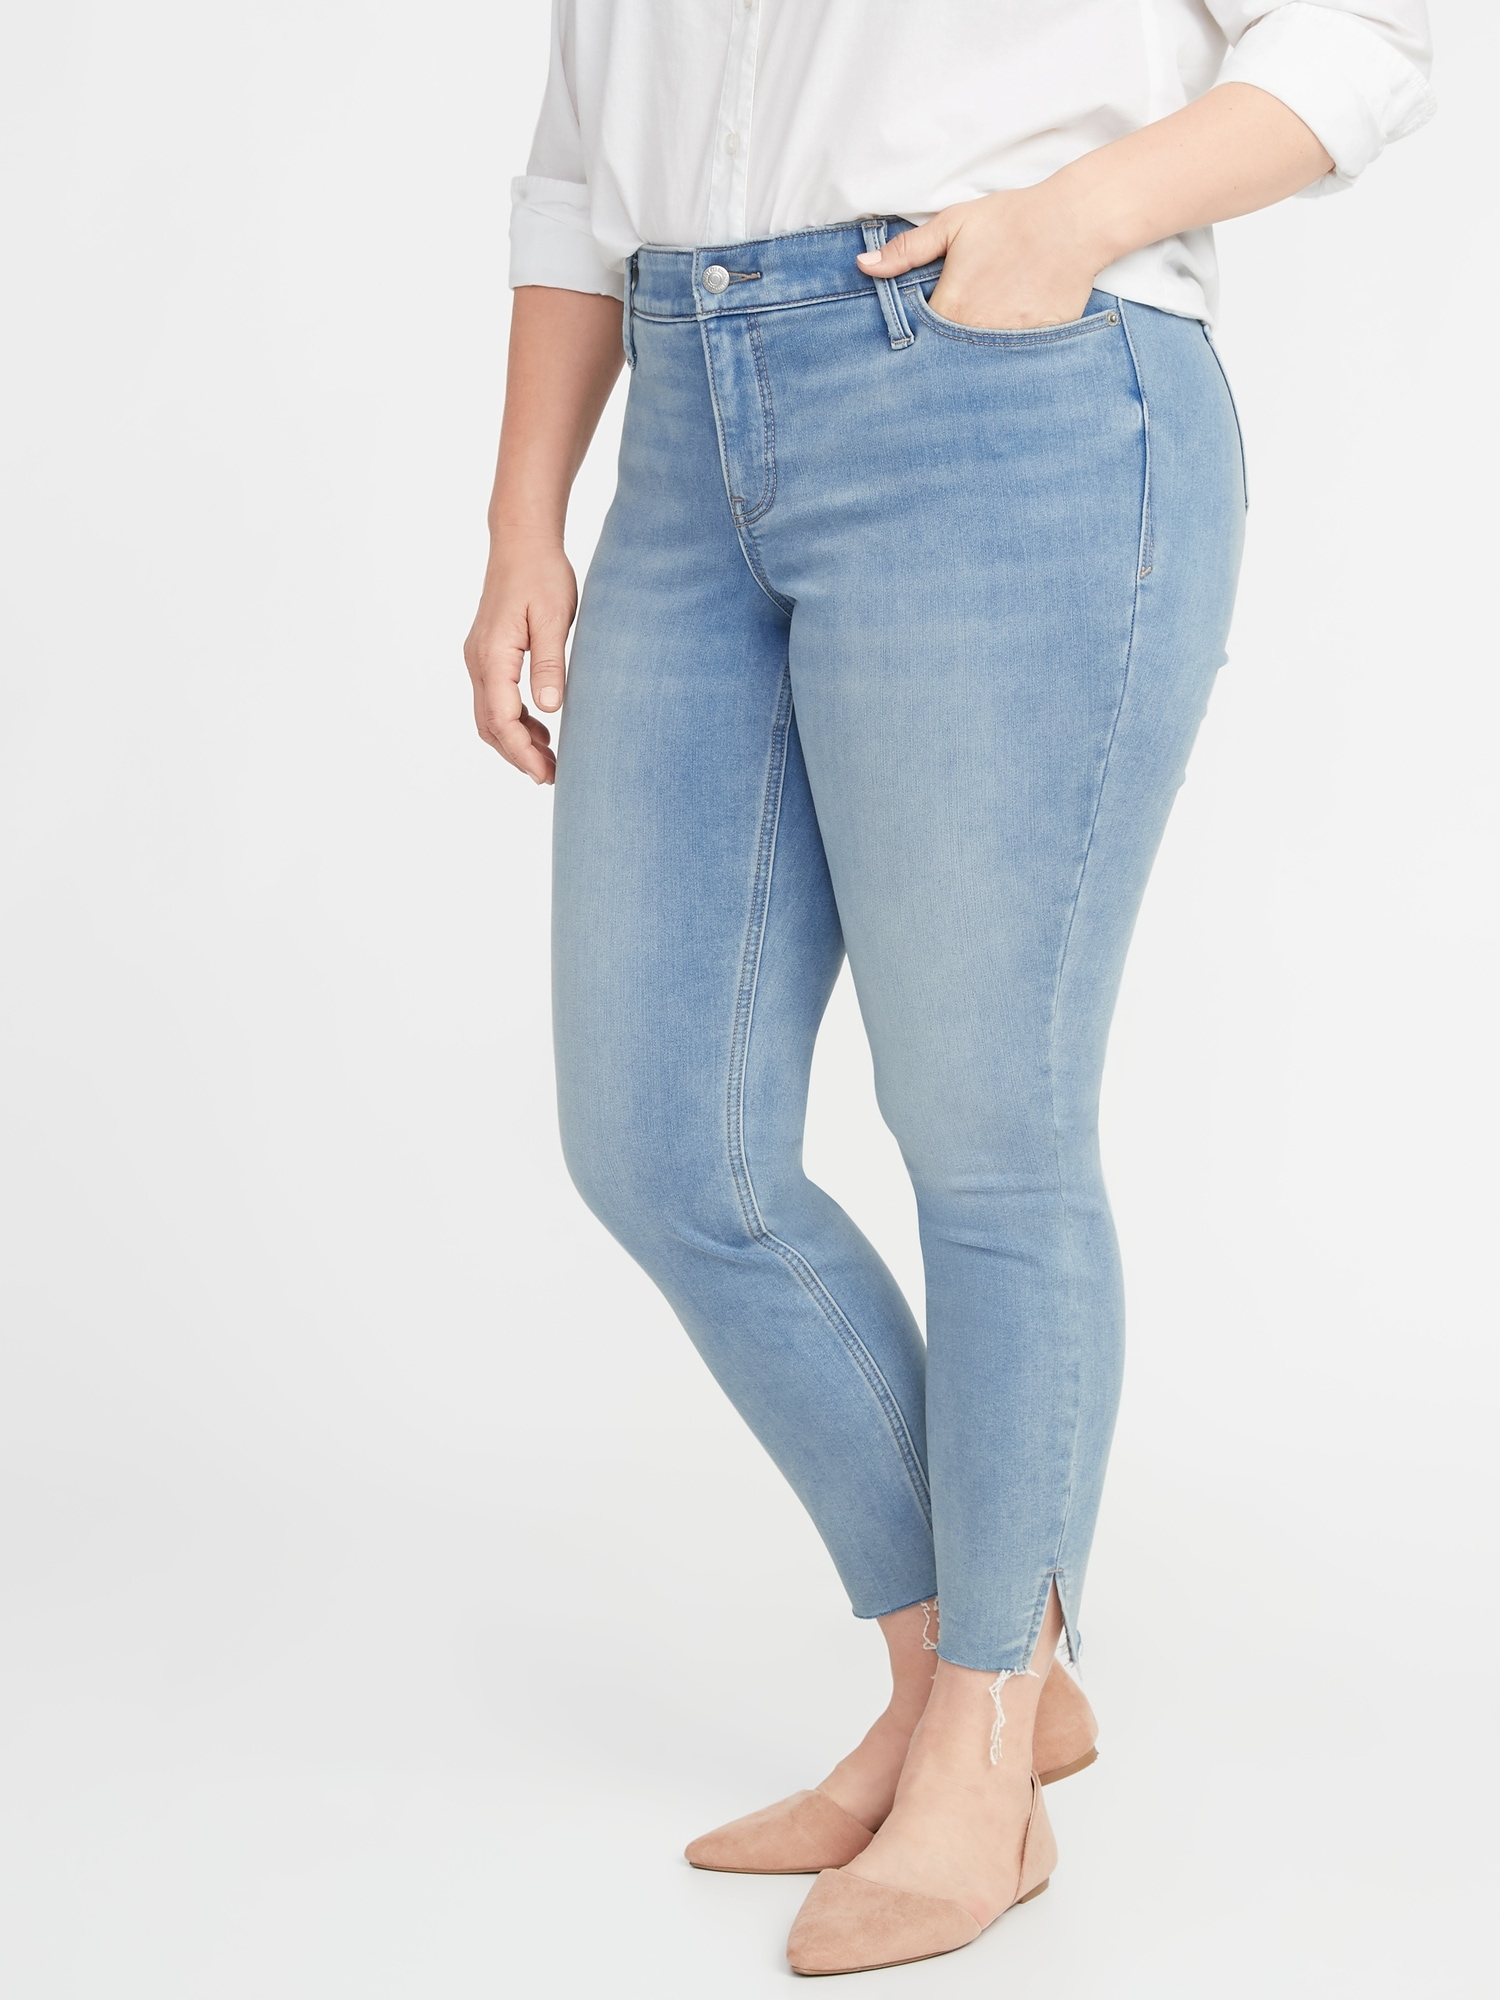 7b6d5d93ed0120 High-Rise Secret-Slim Pockets + Waistband Built-In Warm Rockstar Super  Skinny Plus-Size Jeans | Old Navy